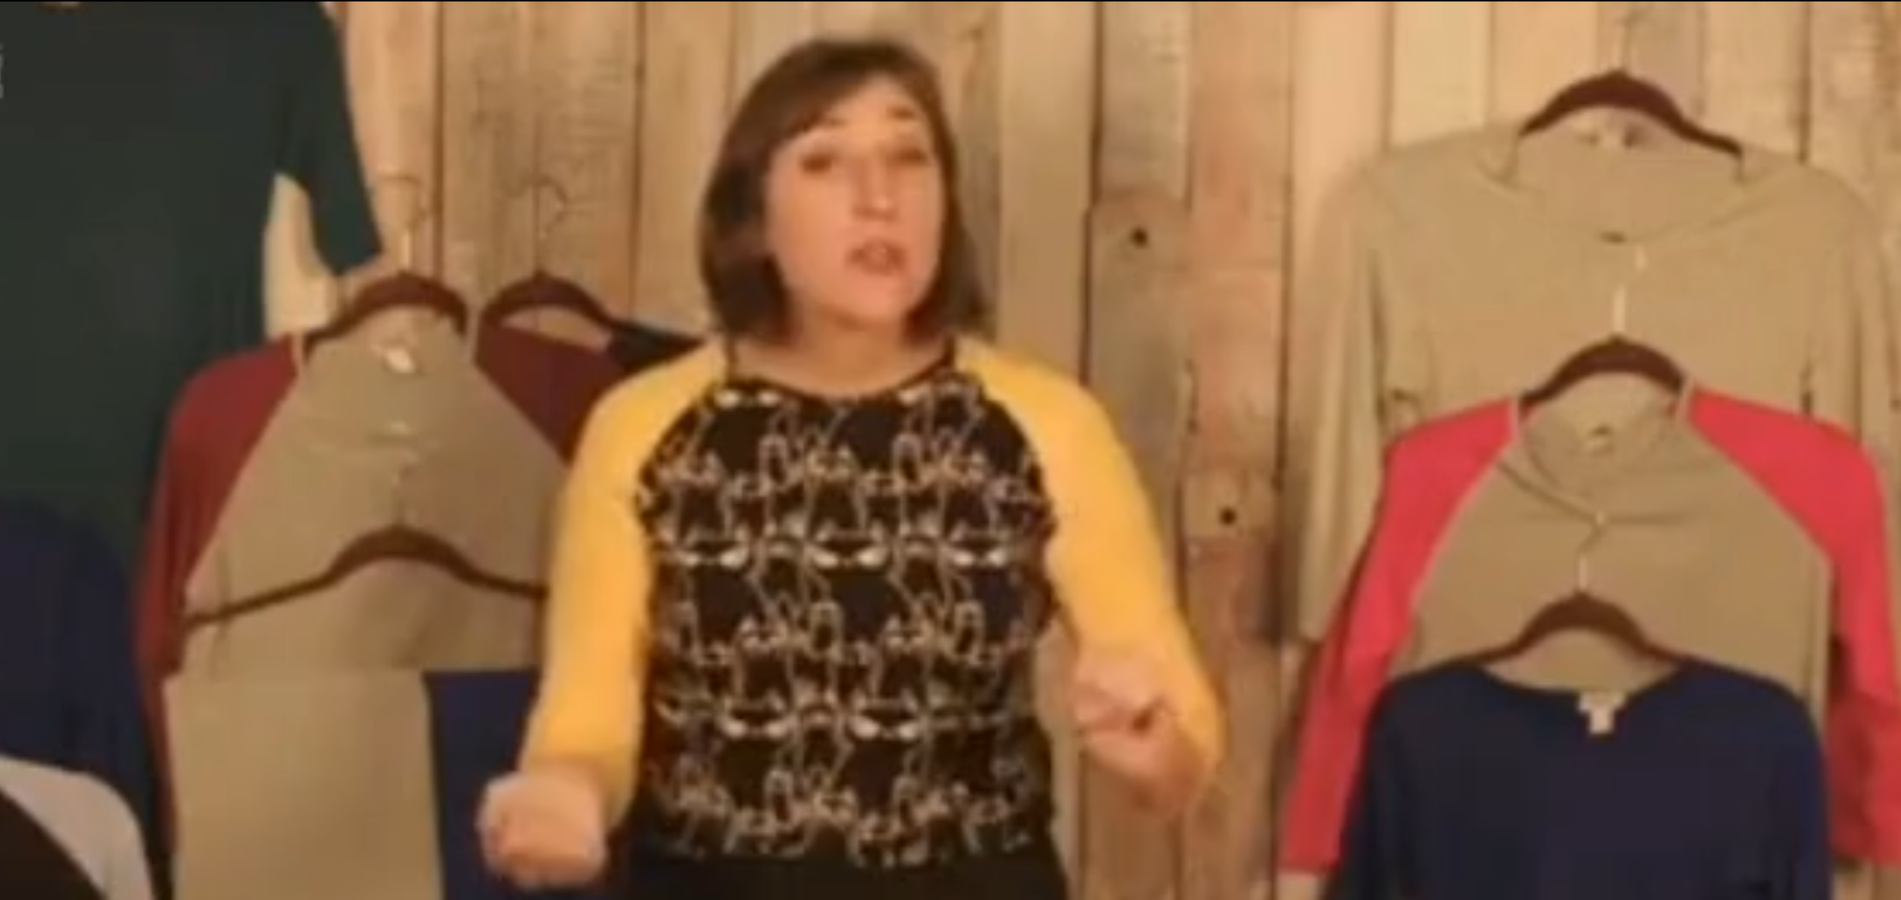 Mayim Bialik's Modest Fashion Promo & Other Orthodox Jews in the News